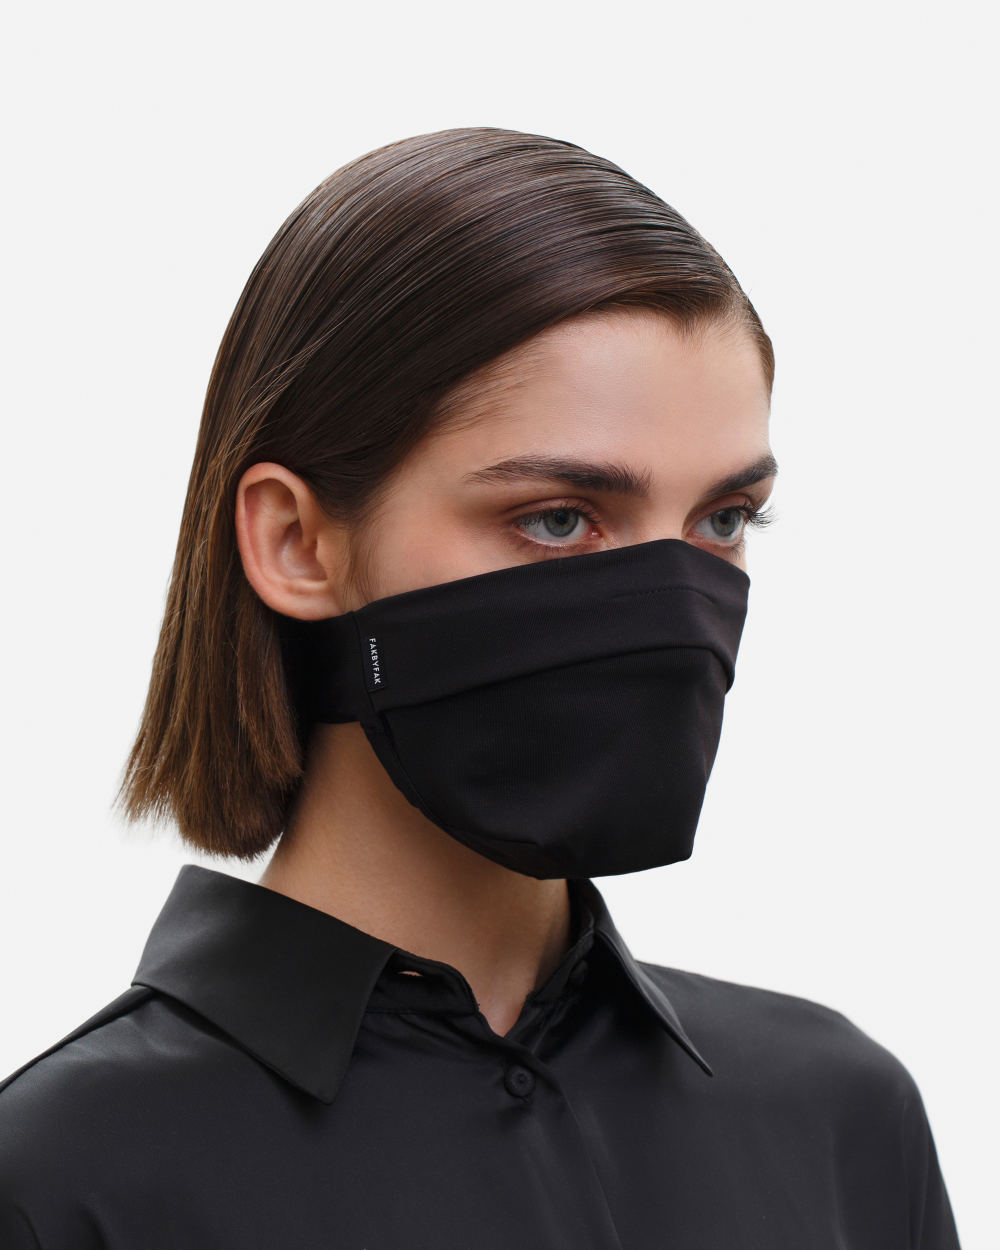 The Vega. Ear Strap-Free High-End Protective Antibacterial (ATB-UV+) Unisex Face Mask. Black